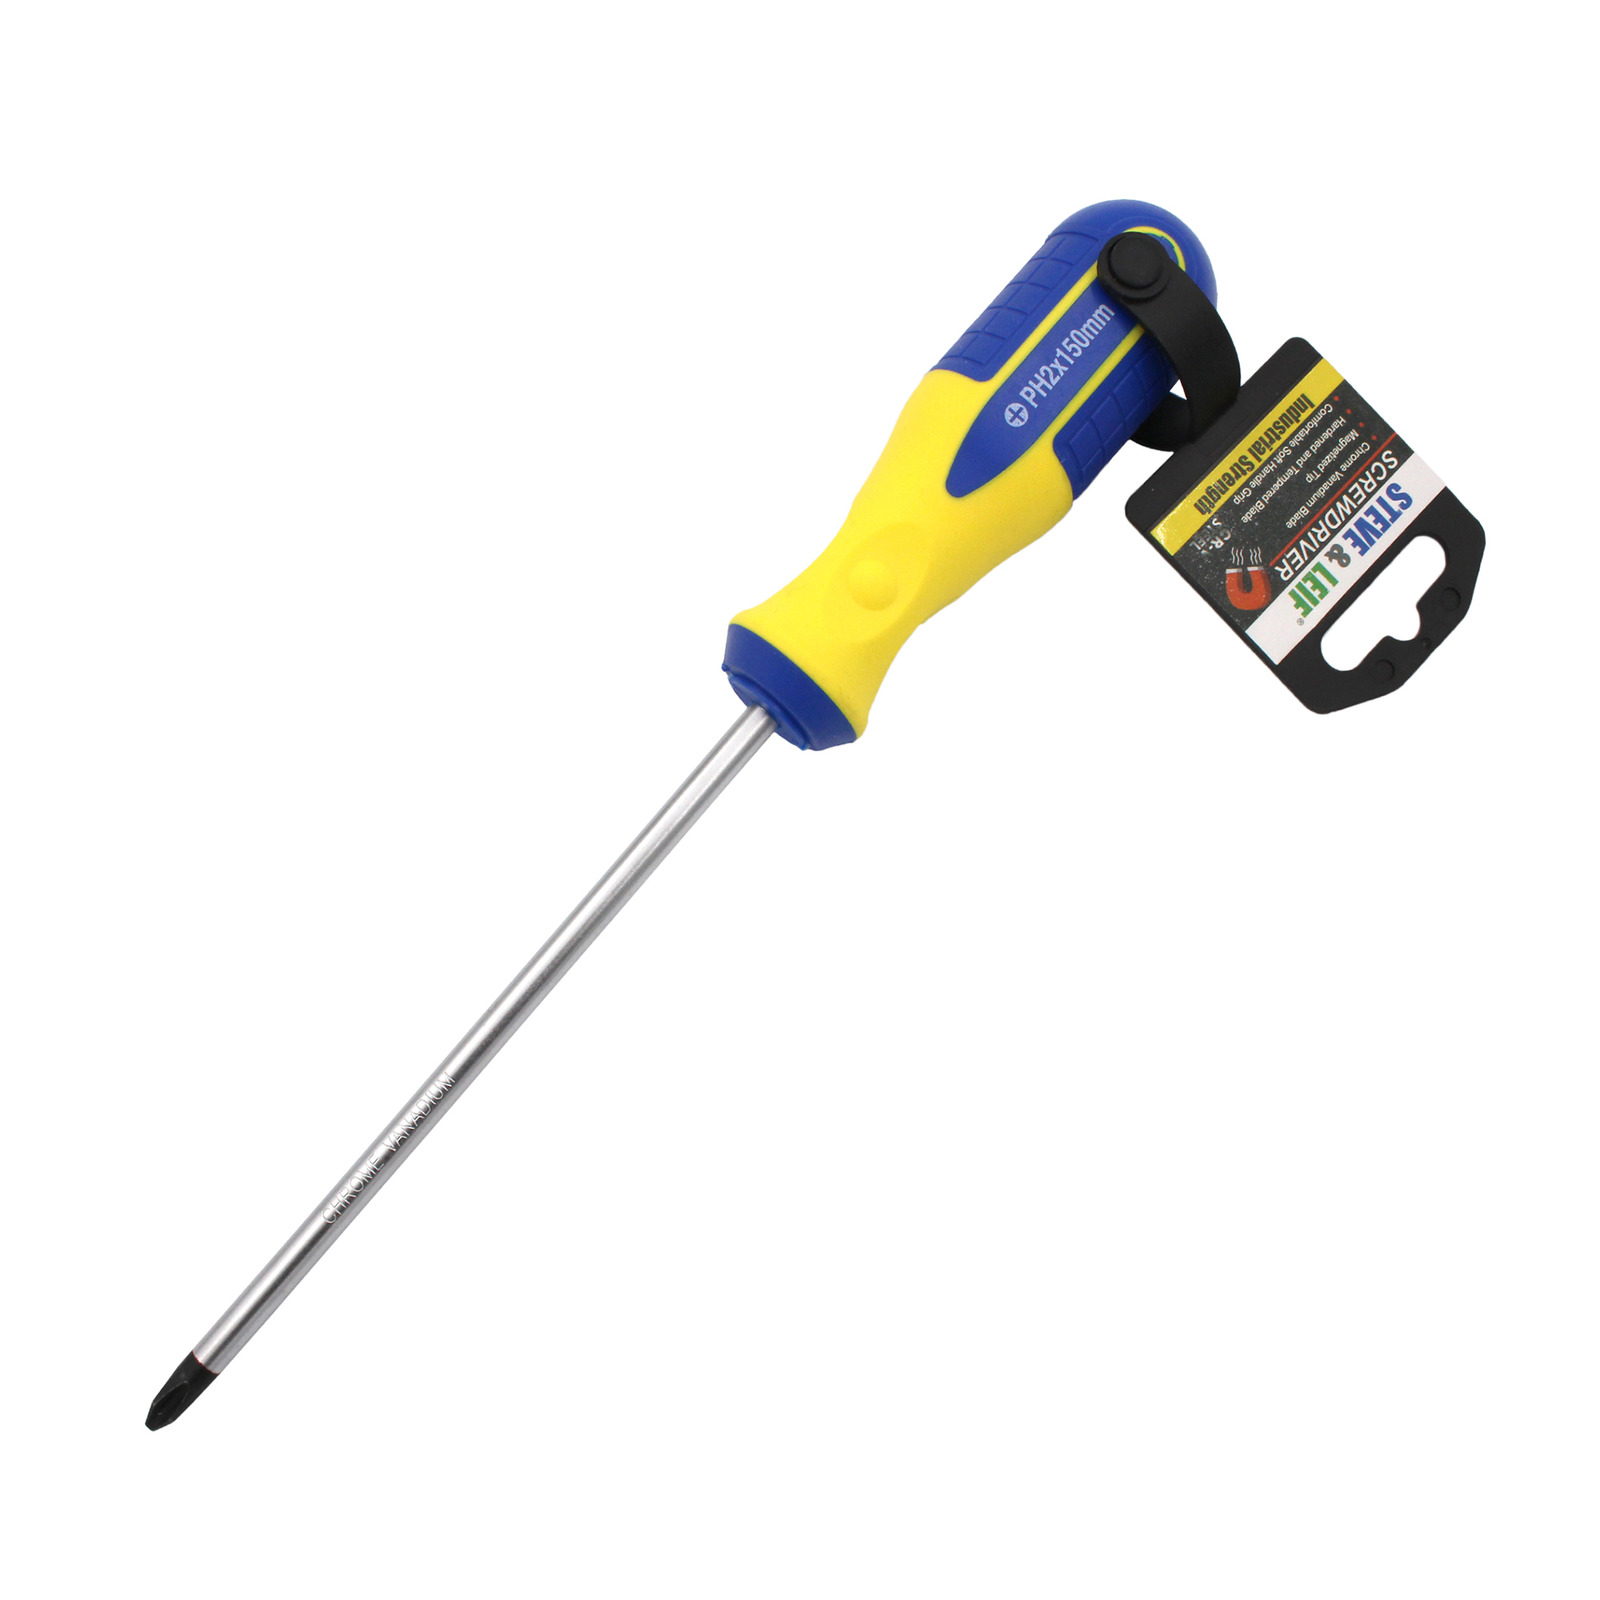 Steve & Leif 6 inch Yellow/Blue Phillips Screwdriver (6x150mm)